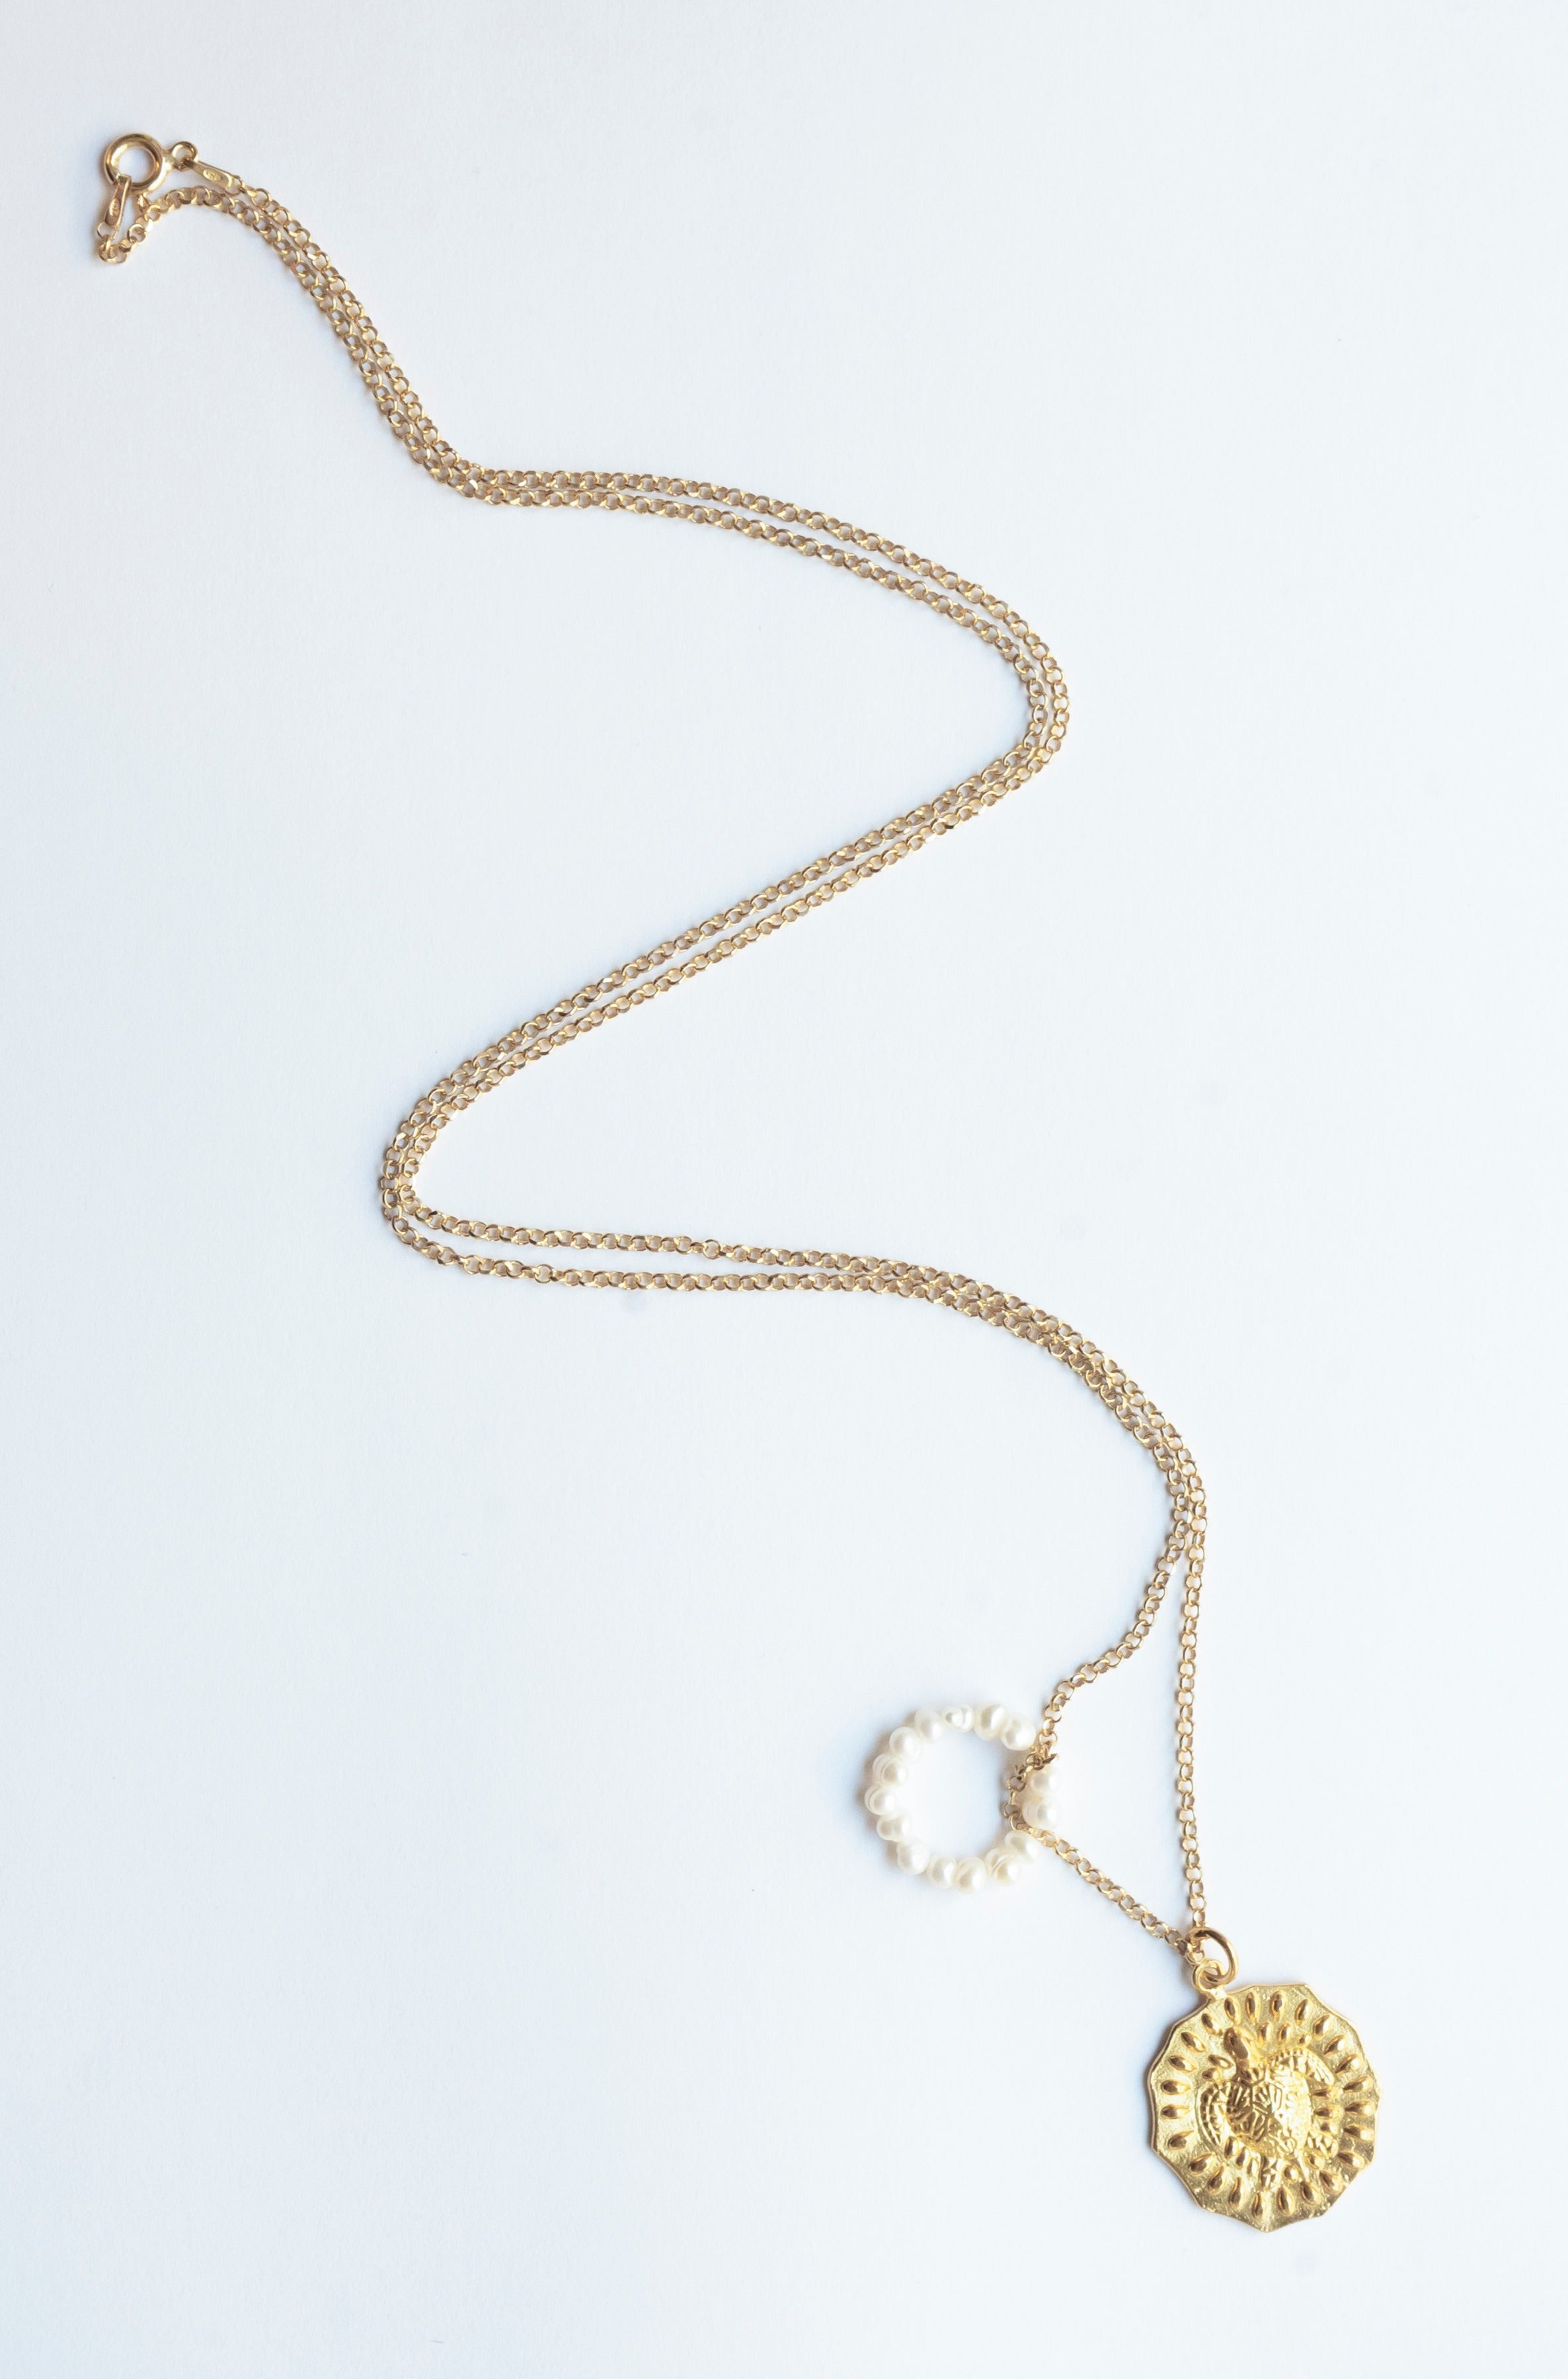 Sea Turtle Necklace - Gold Plated